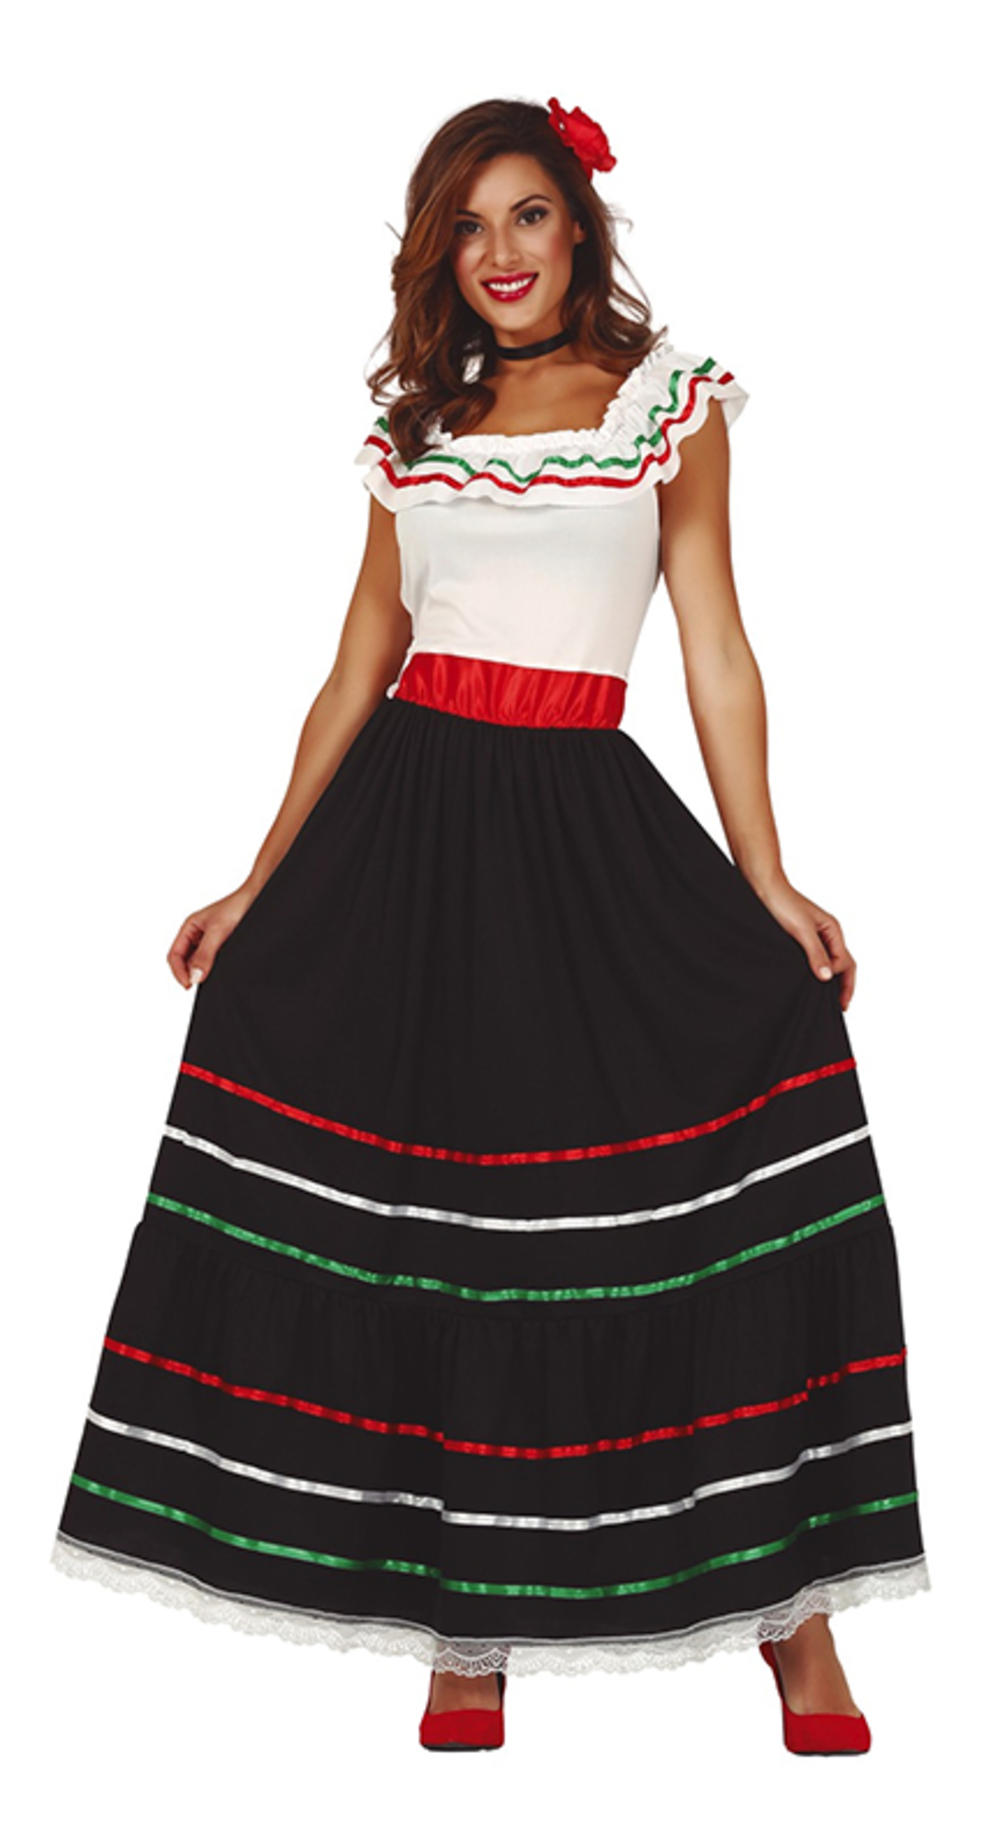 Ladies Mexican Senorita Costume